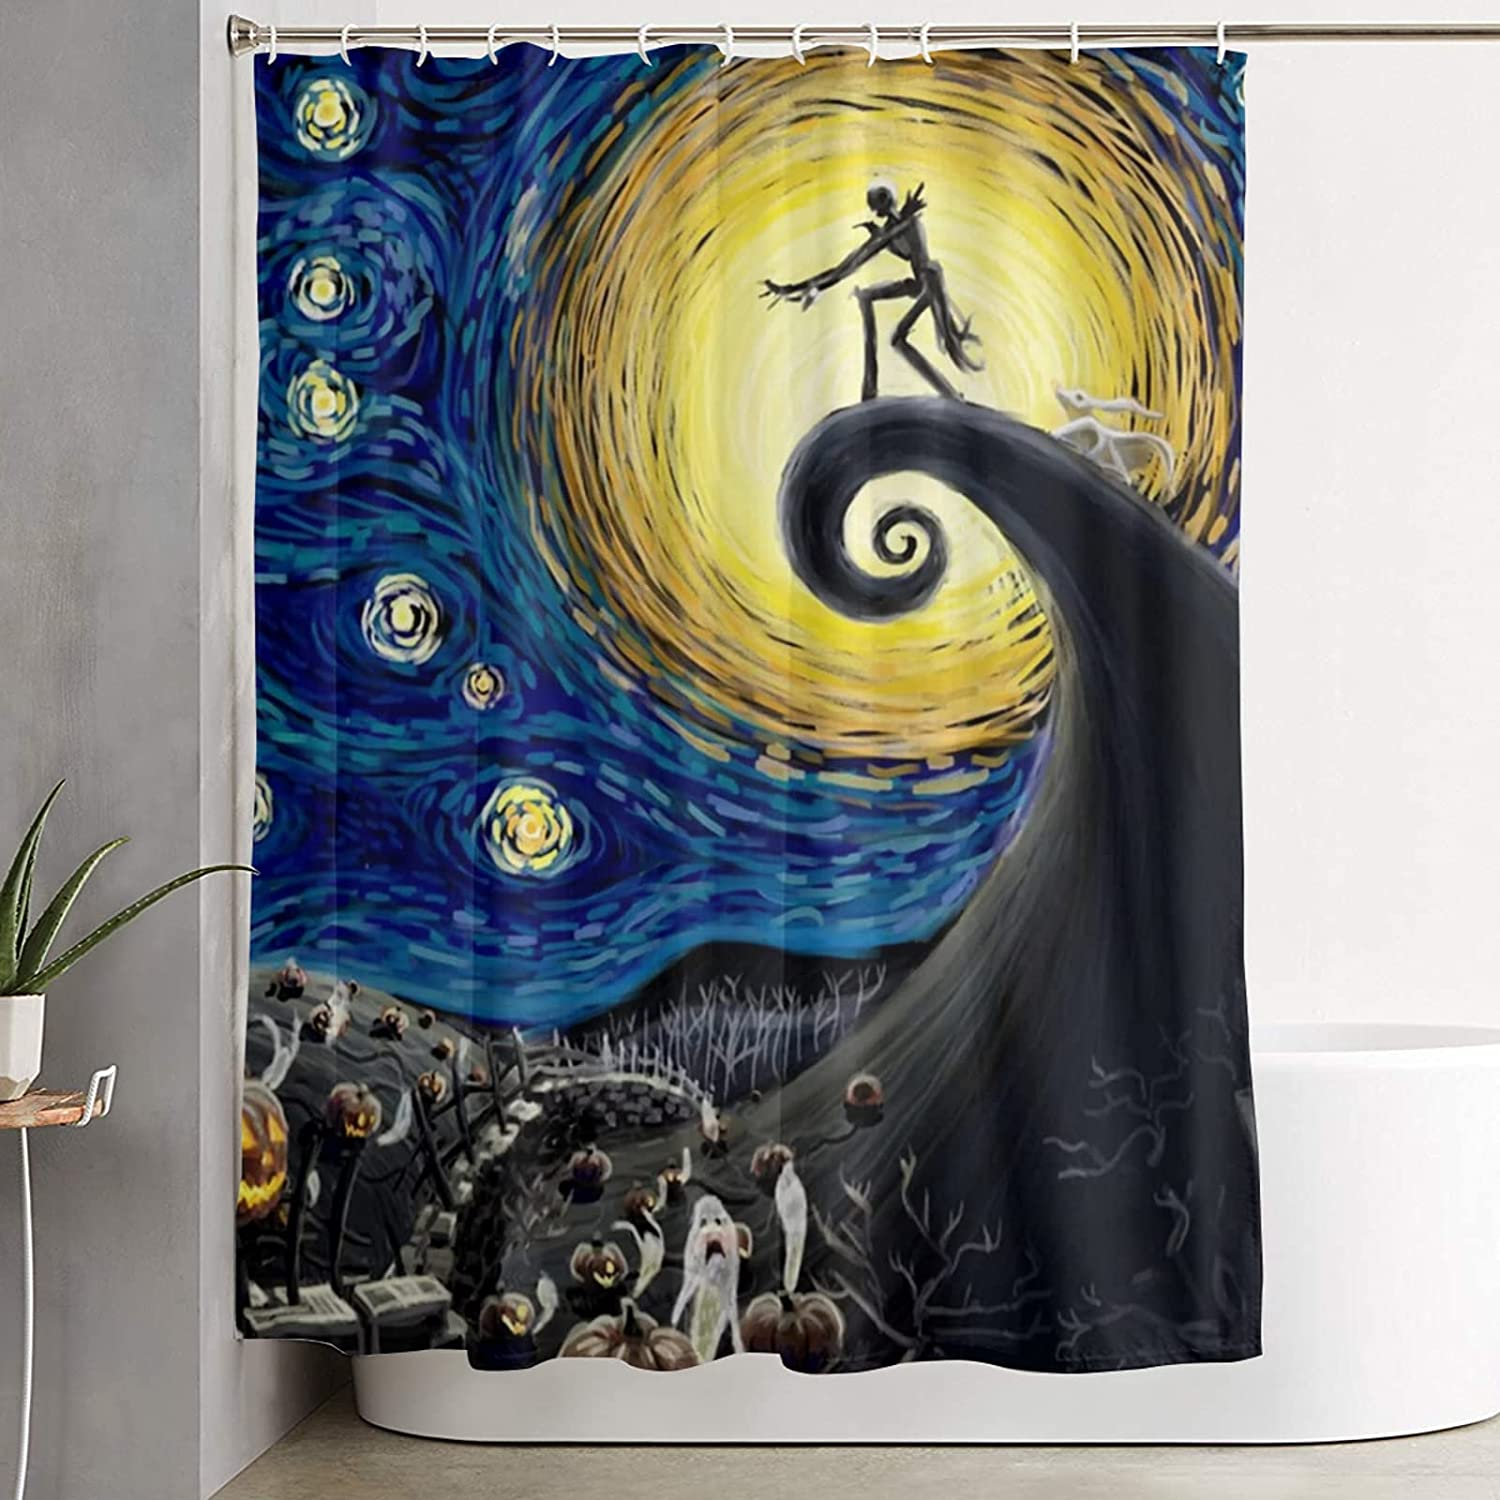 Starry Night Printed Bathroom Materi Gorgeous Daily bargain sale Soft Shower Curtain